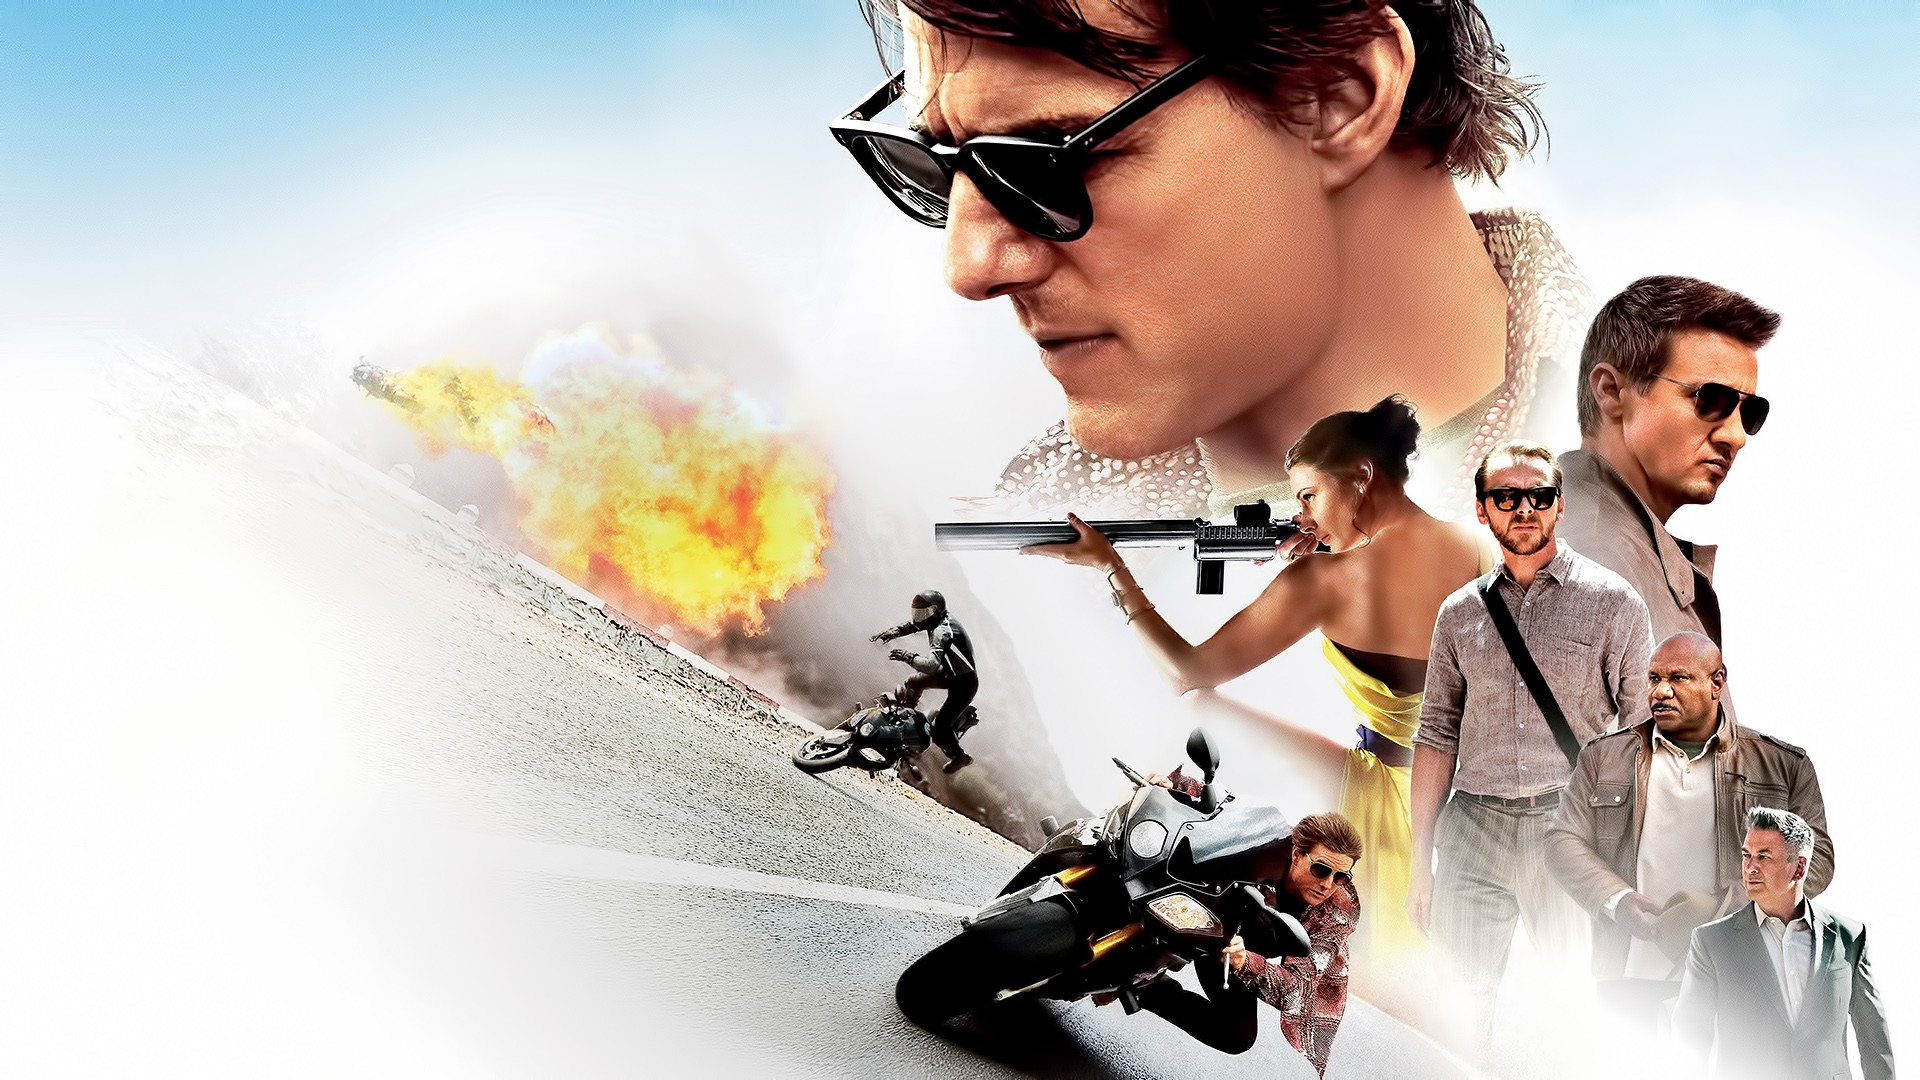 mission impossible rogue nation jeremy renner tom cruise